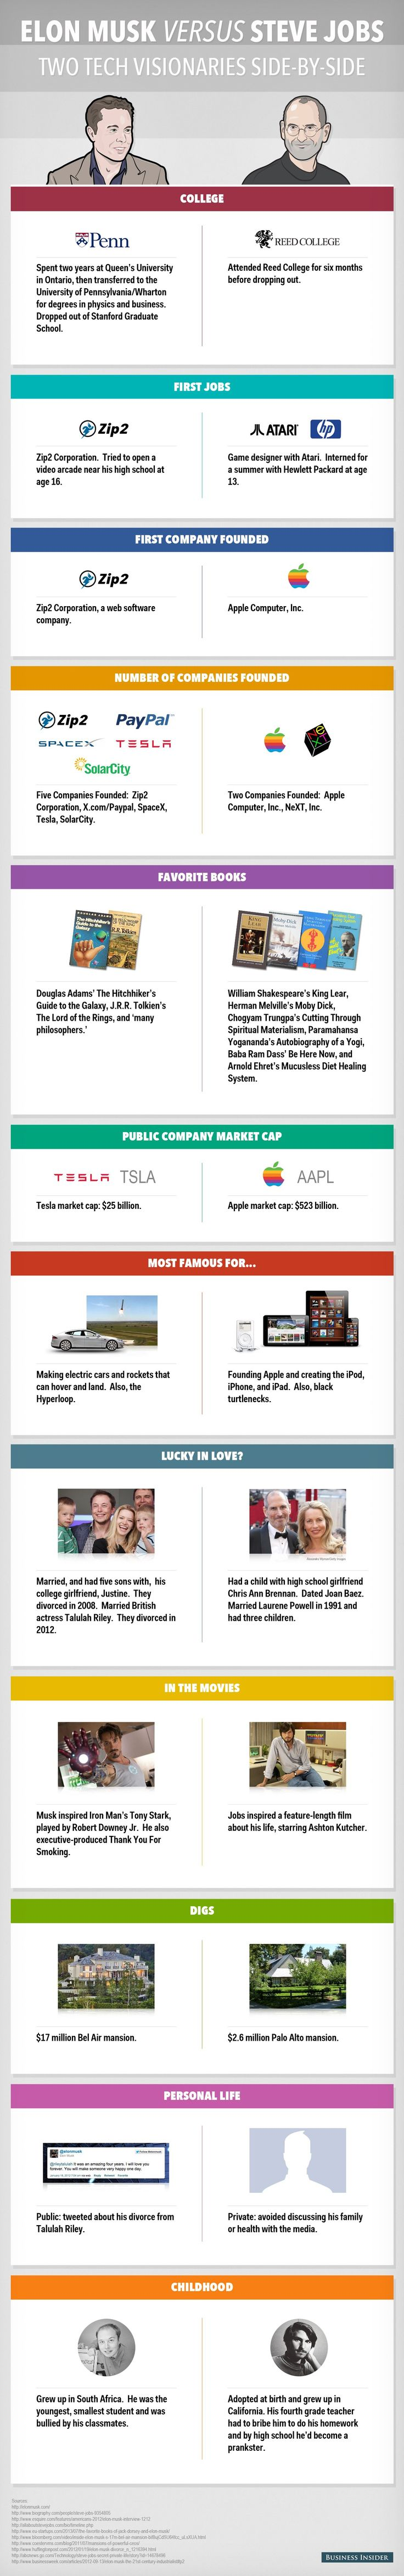 Steve Jobs Vs. Elon Musk — Which Tech Legend Actually Accomplished More (Hint: he's still alive)